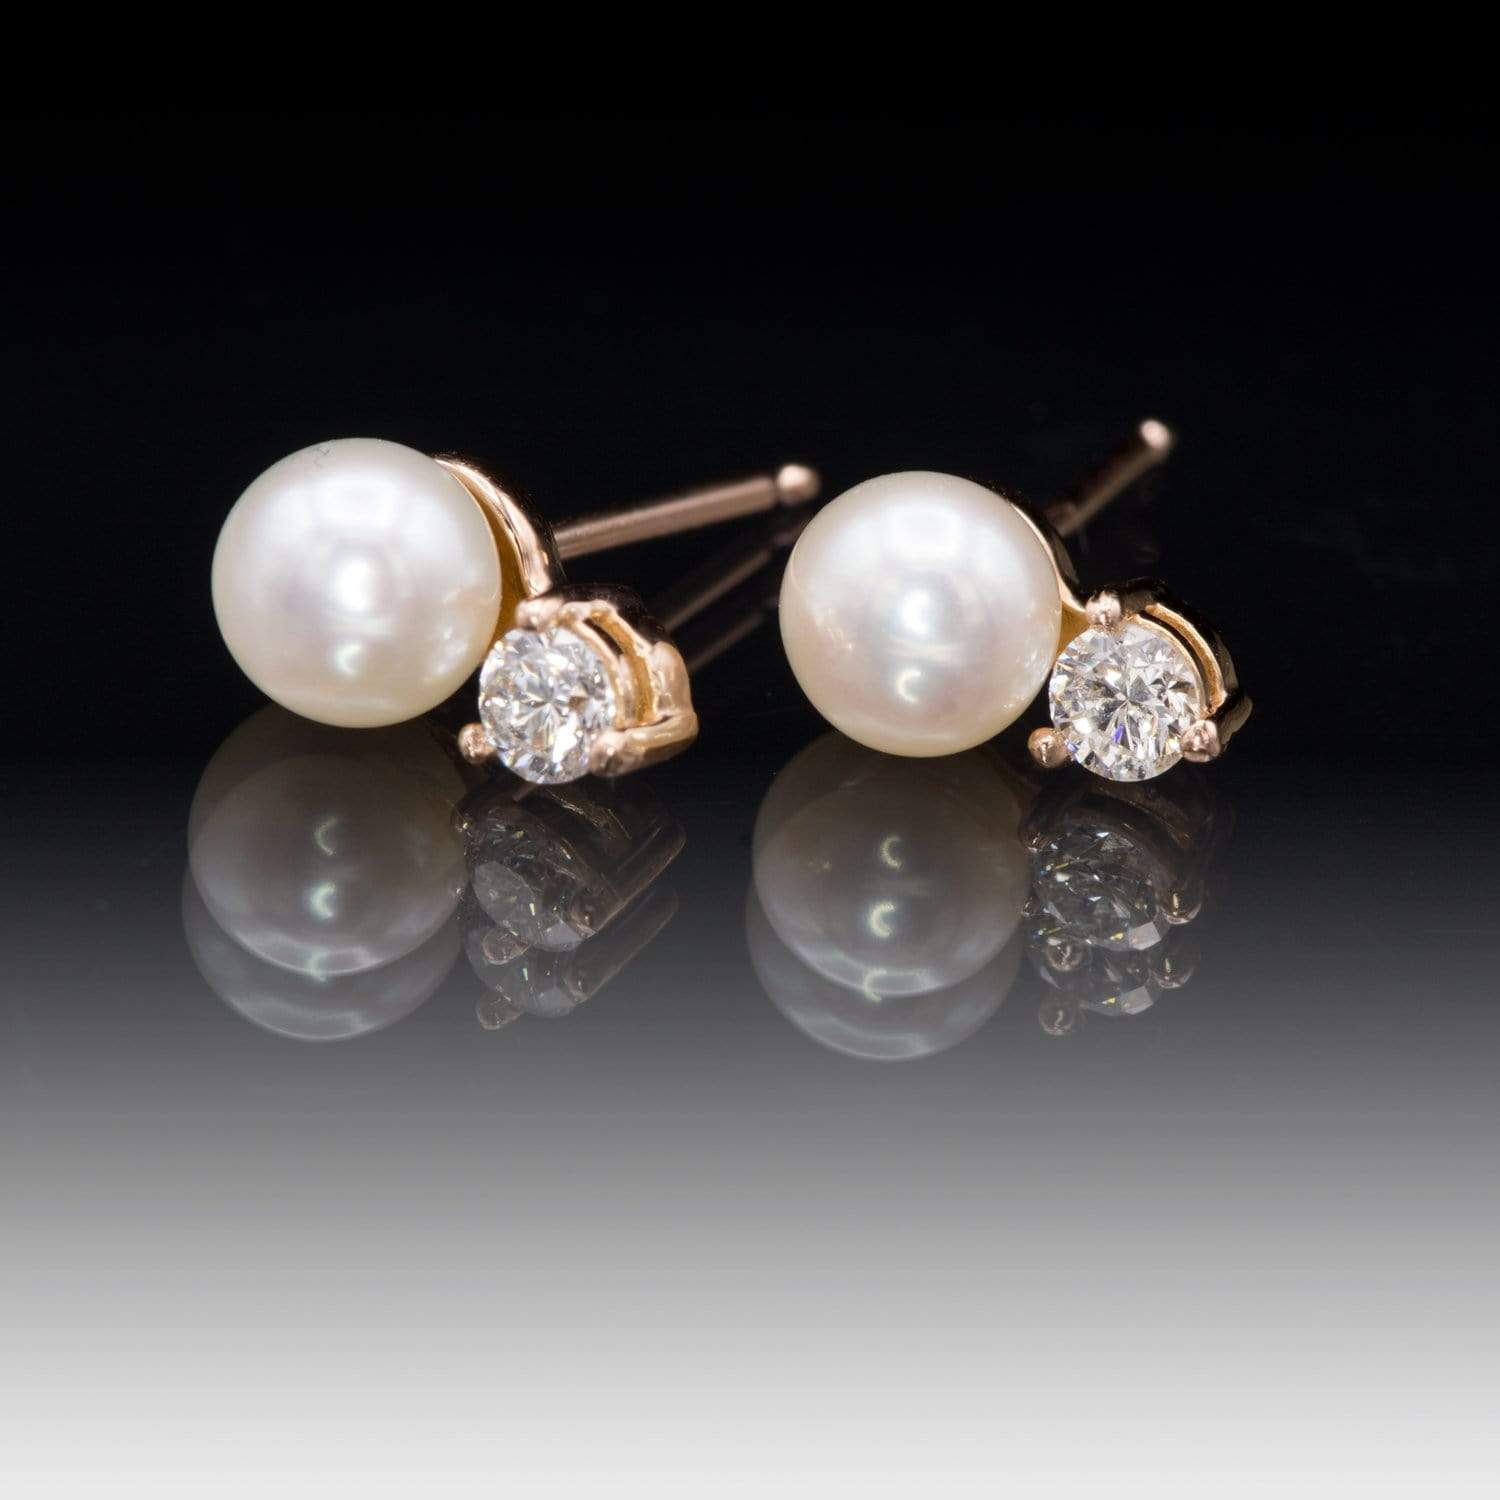 White Freshwater Cultured Pearl & Diamond Cluster Stud Earrings